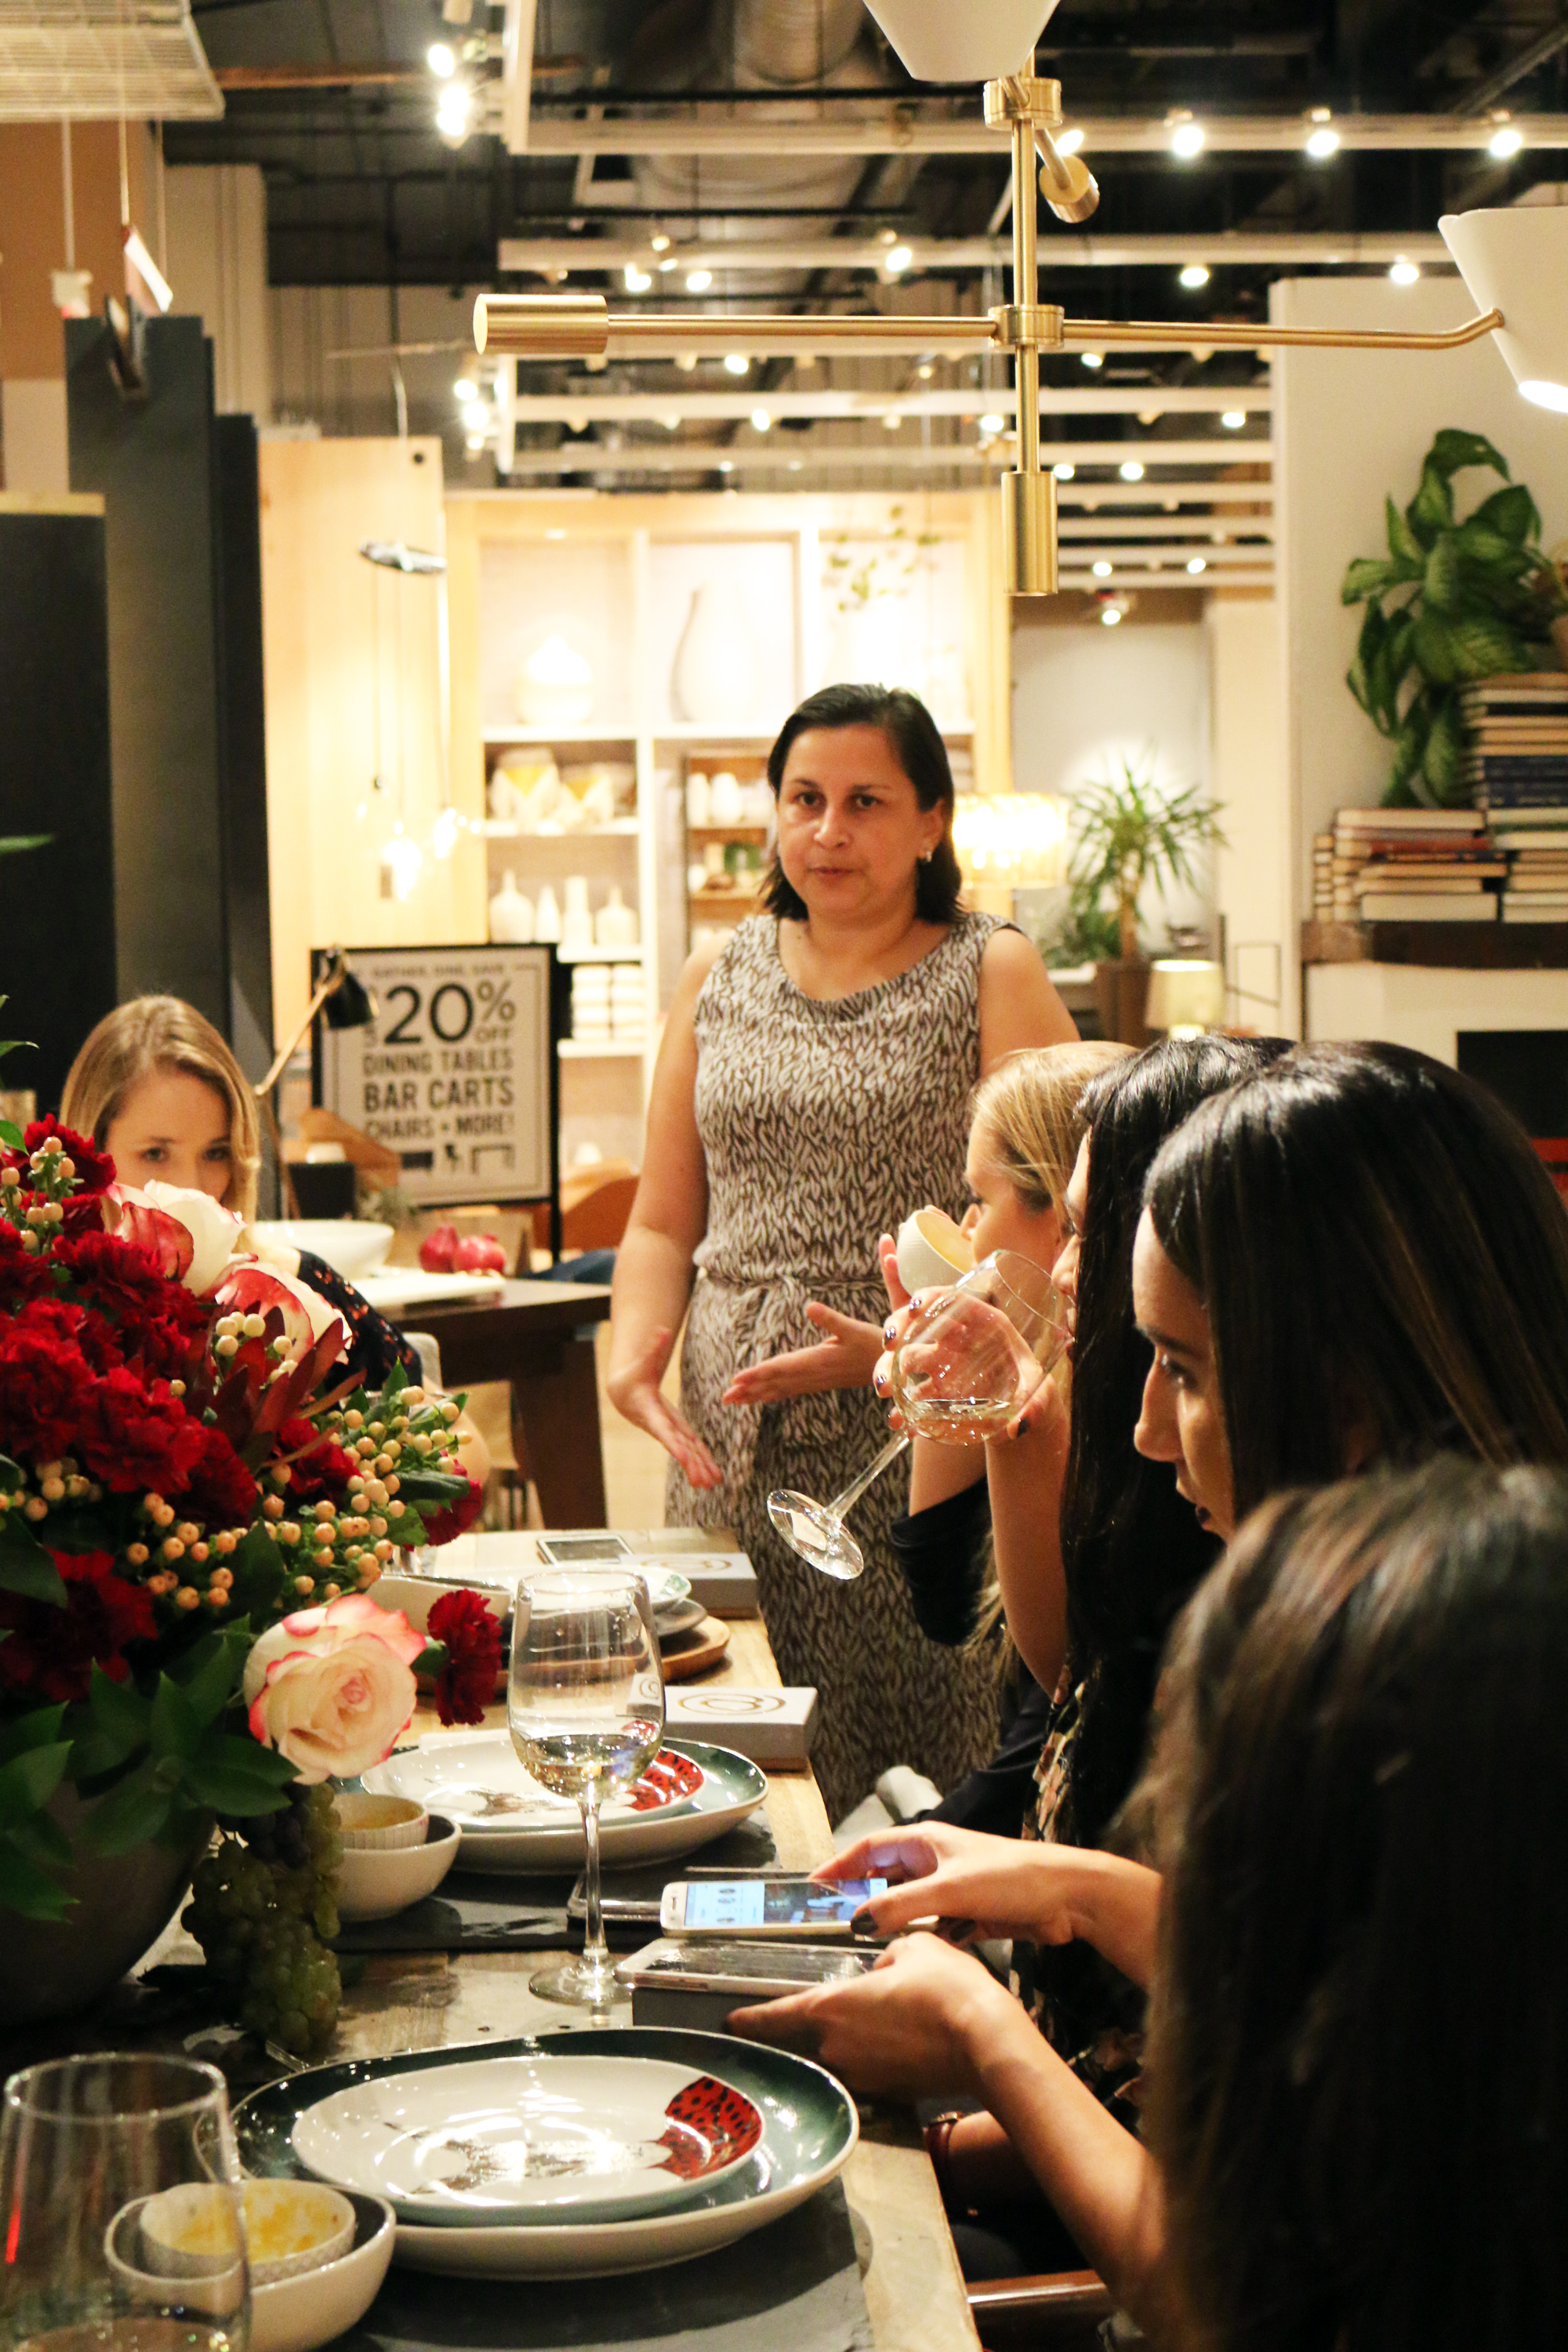 Mia with Cuisine & Events